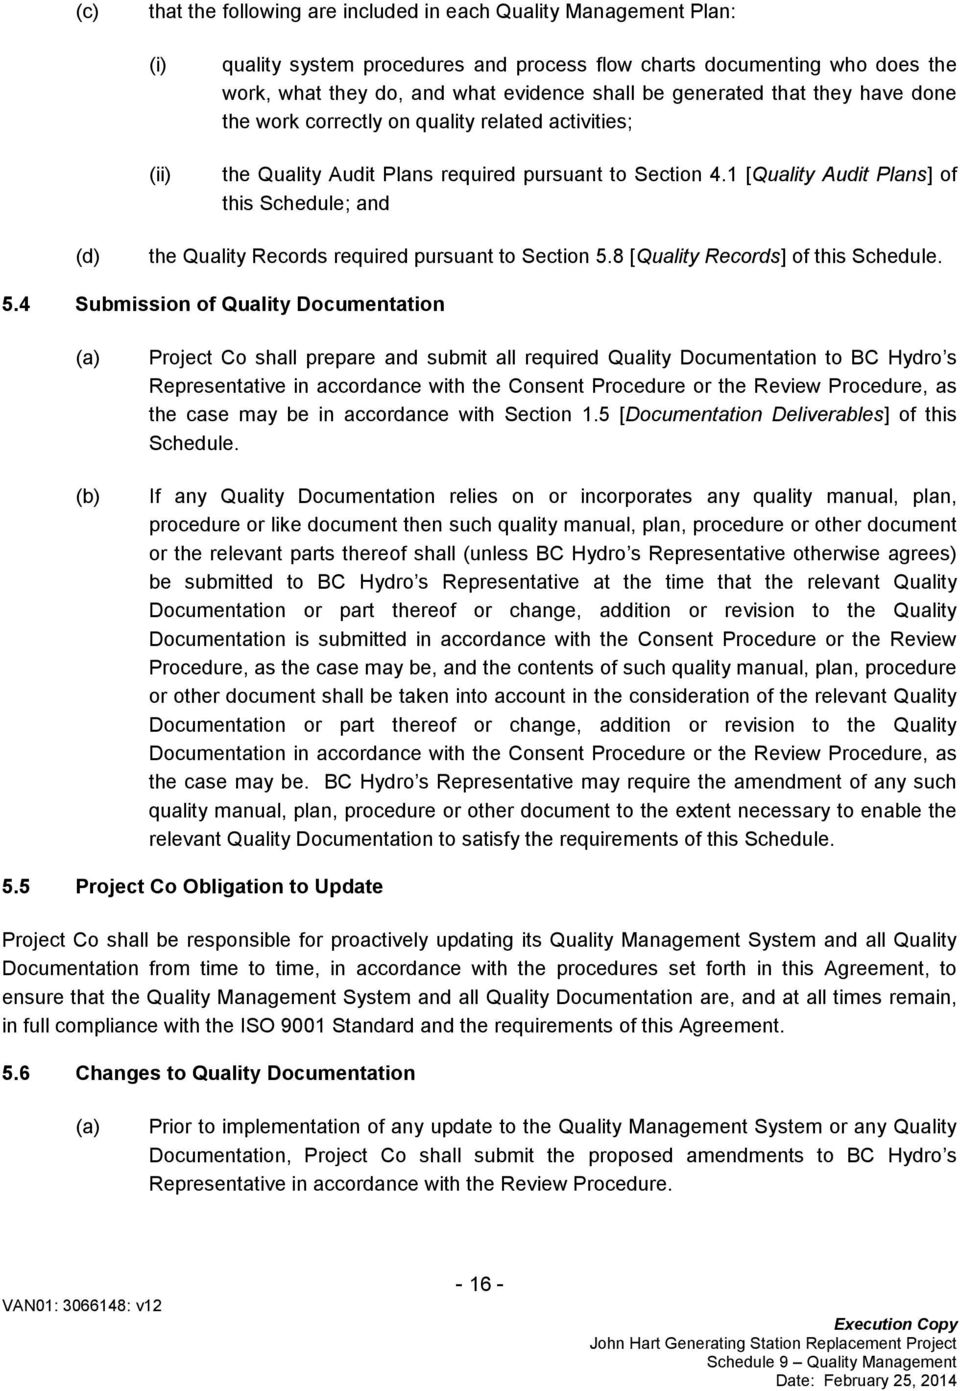 1 [Quality Audit Plans] of this Schedule; and the Quality Records required pursuant to Section 5.